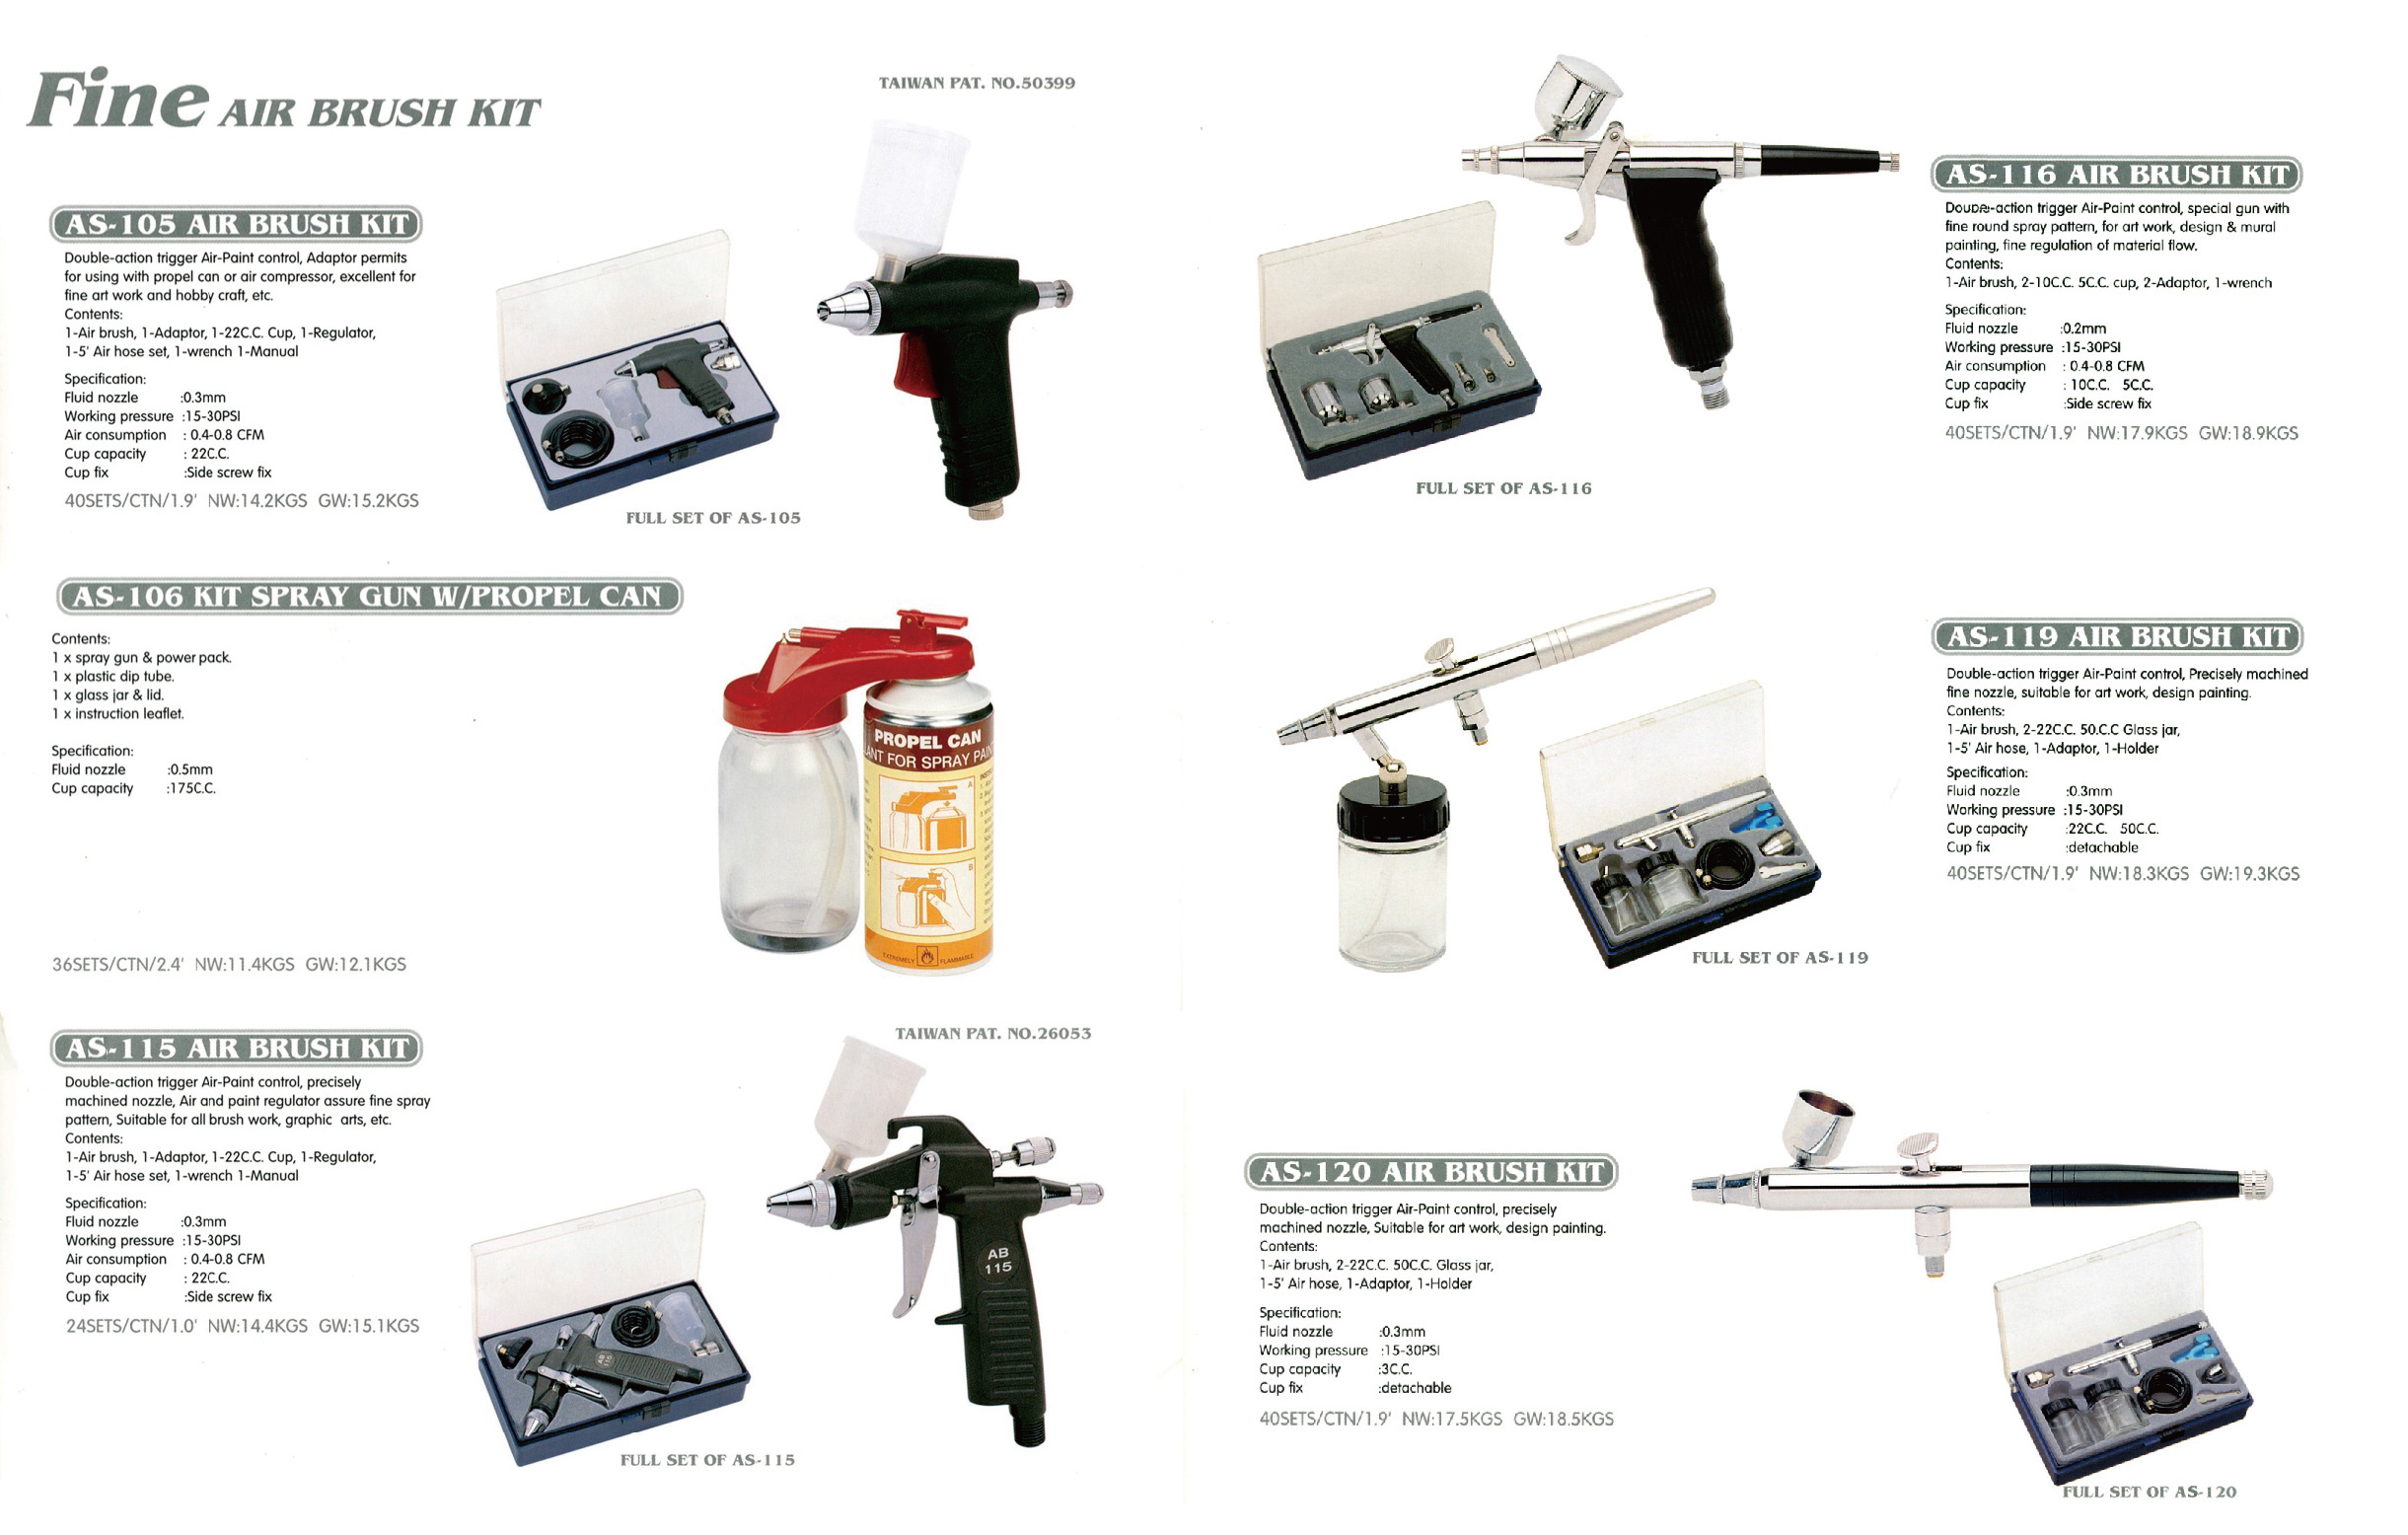 Taiwan Graffiti Spray Car Painting Airbrush Kit | A-HOT